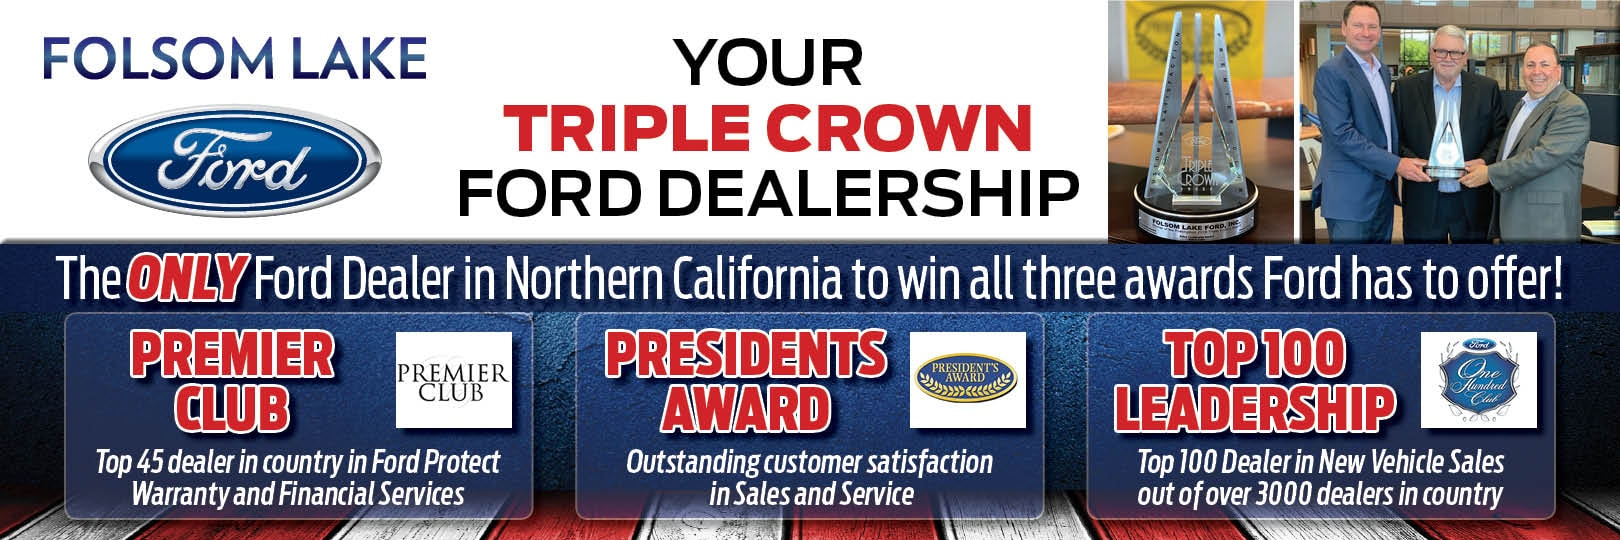 Contact Us Palm Bay Ford Service >> Folsom Lake Ford In Sacramento New Used Car Dealership